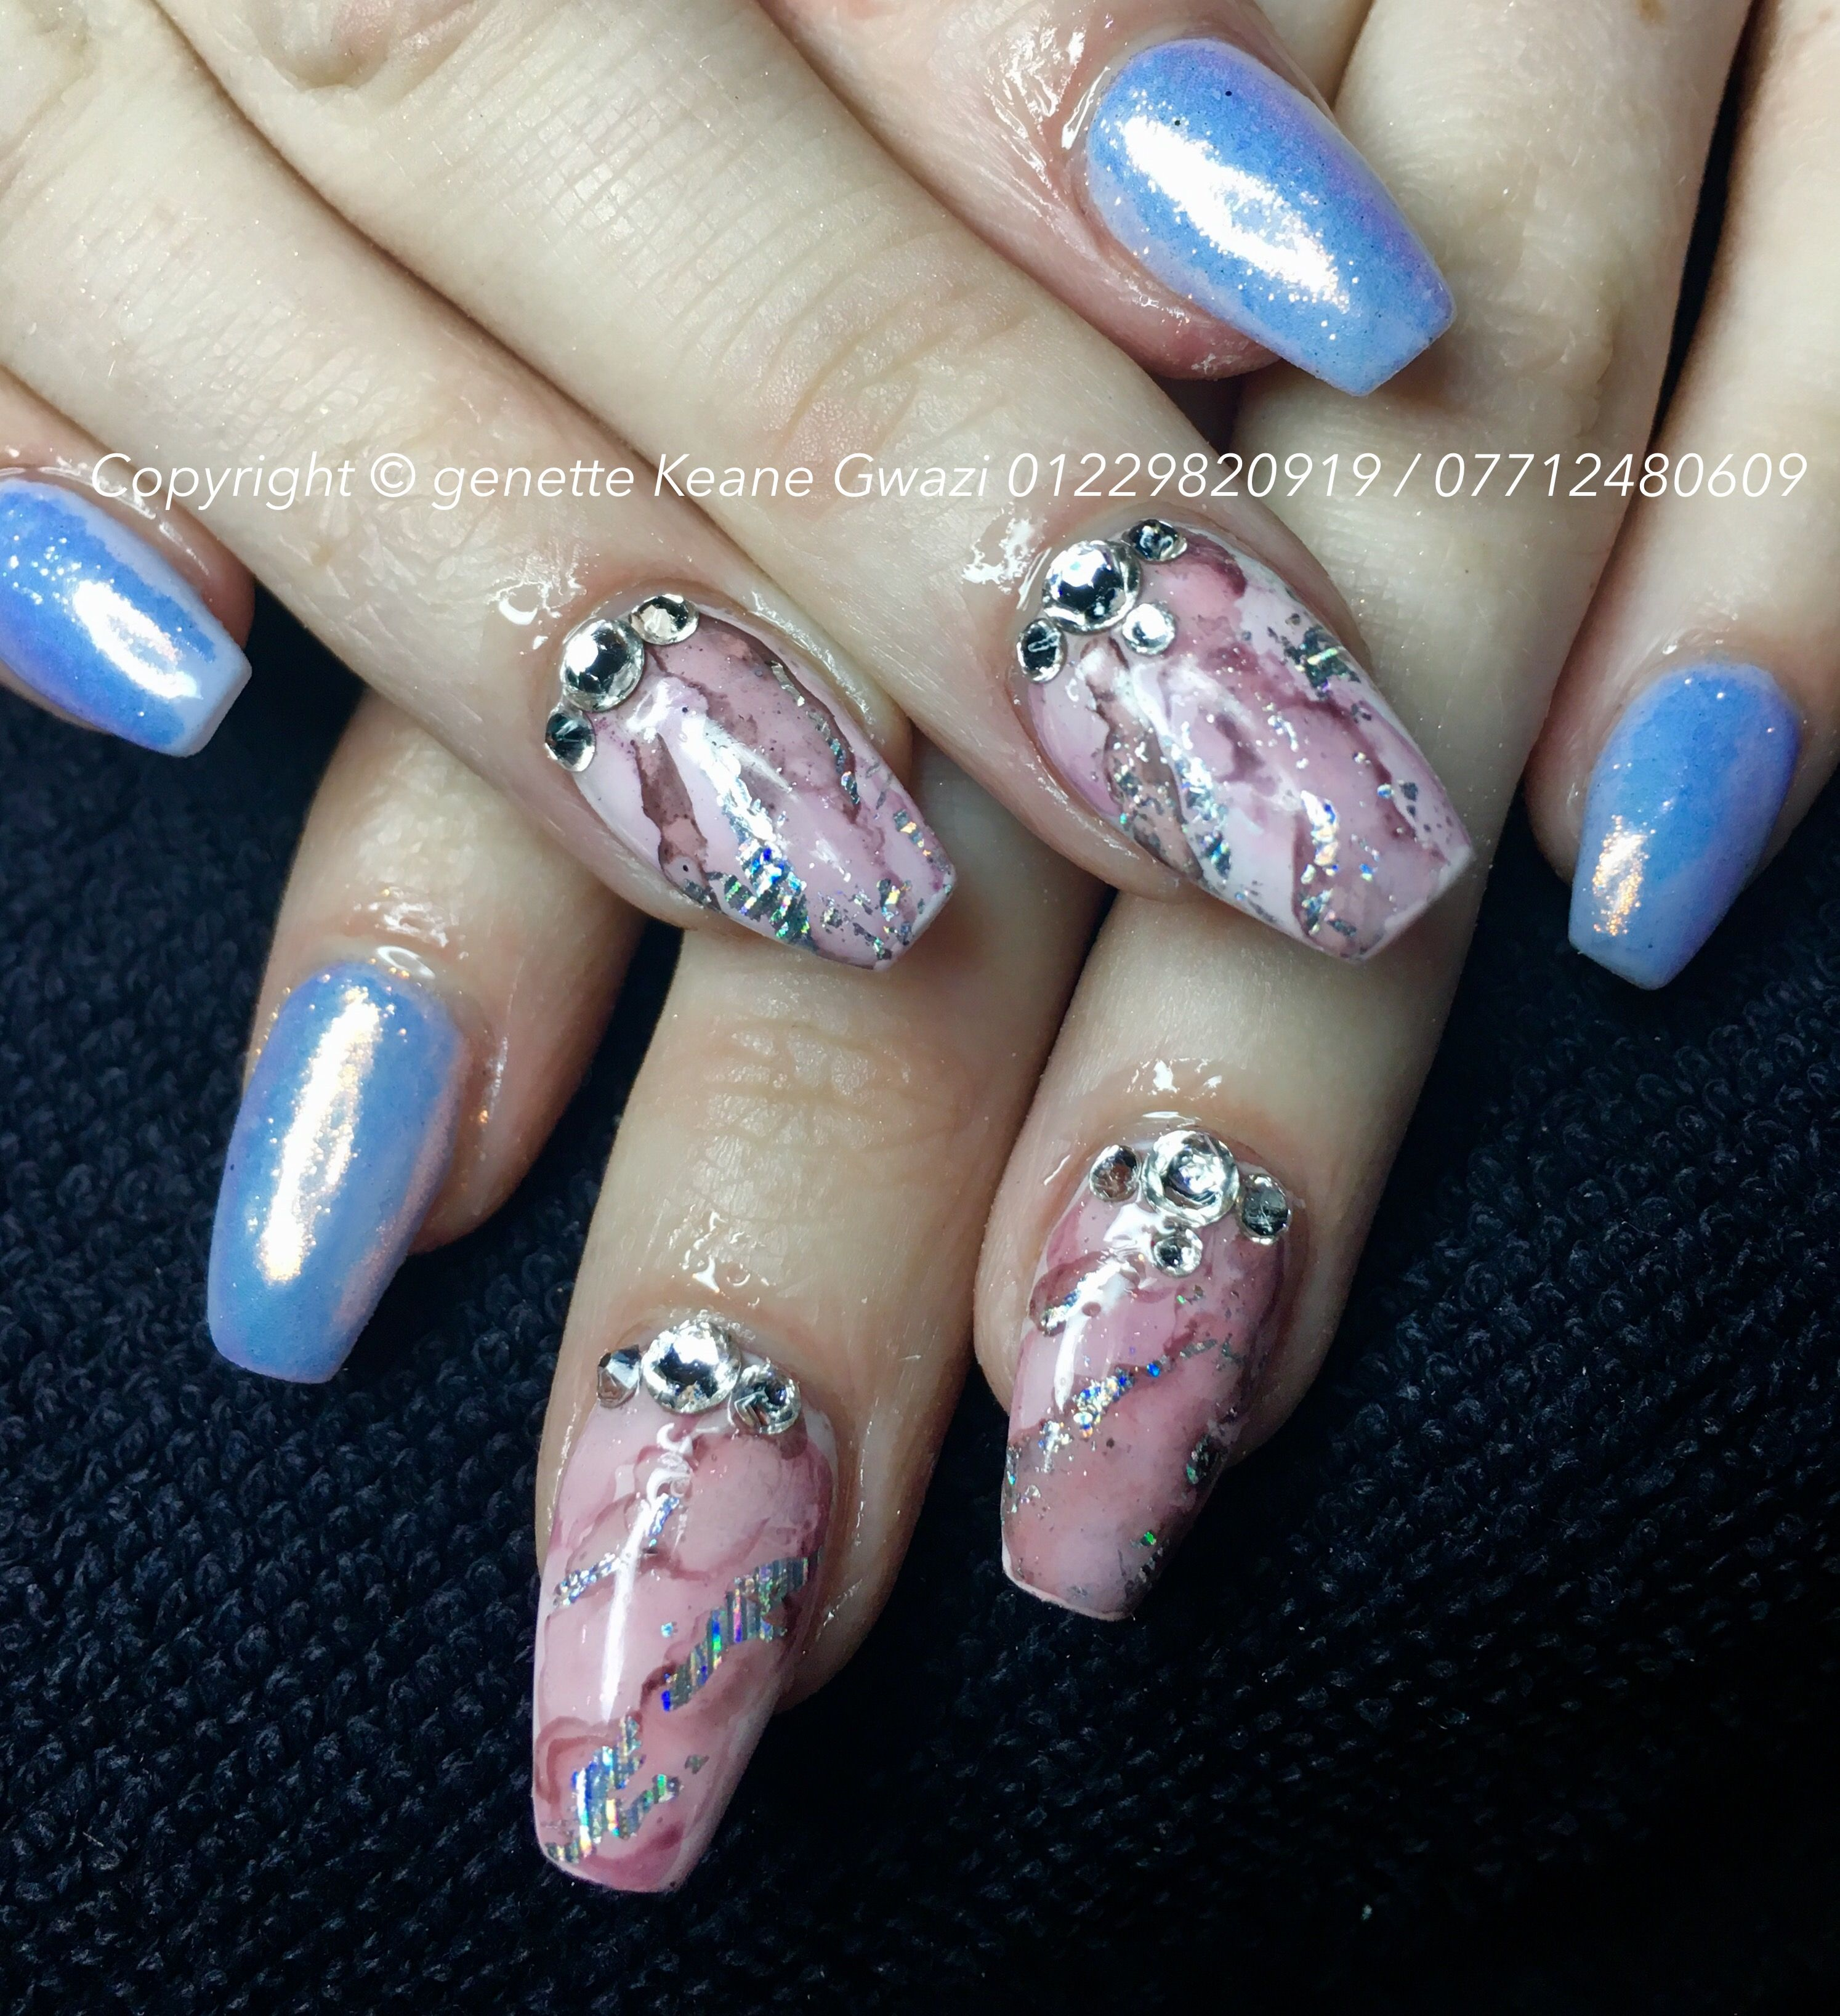 Marble Nail Art Swarovski Crystal Nails Swarovski Nails Crystal Nails Marble Nails